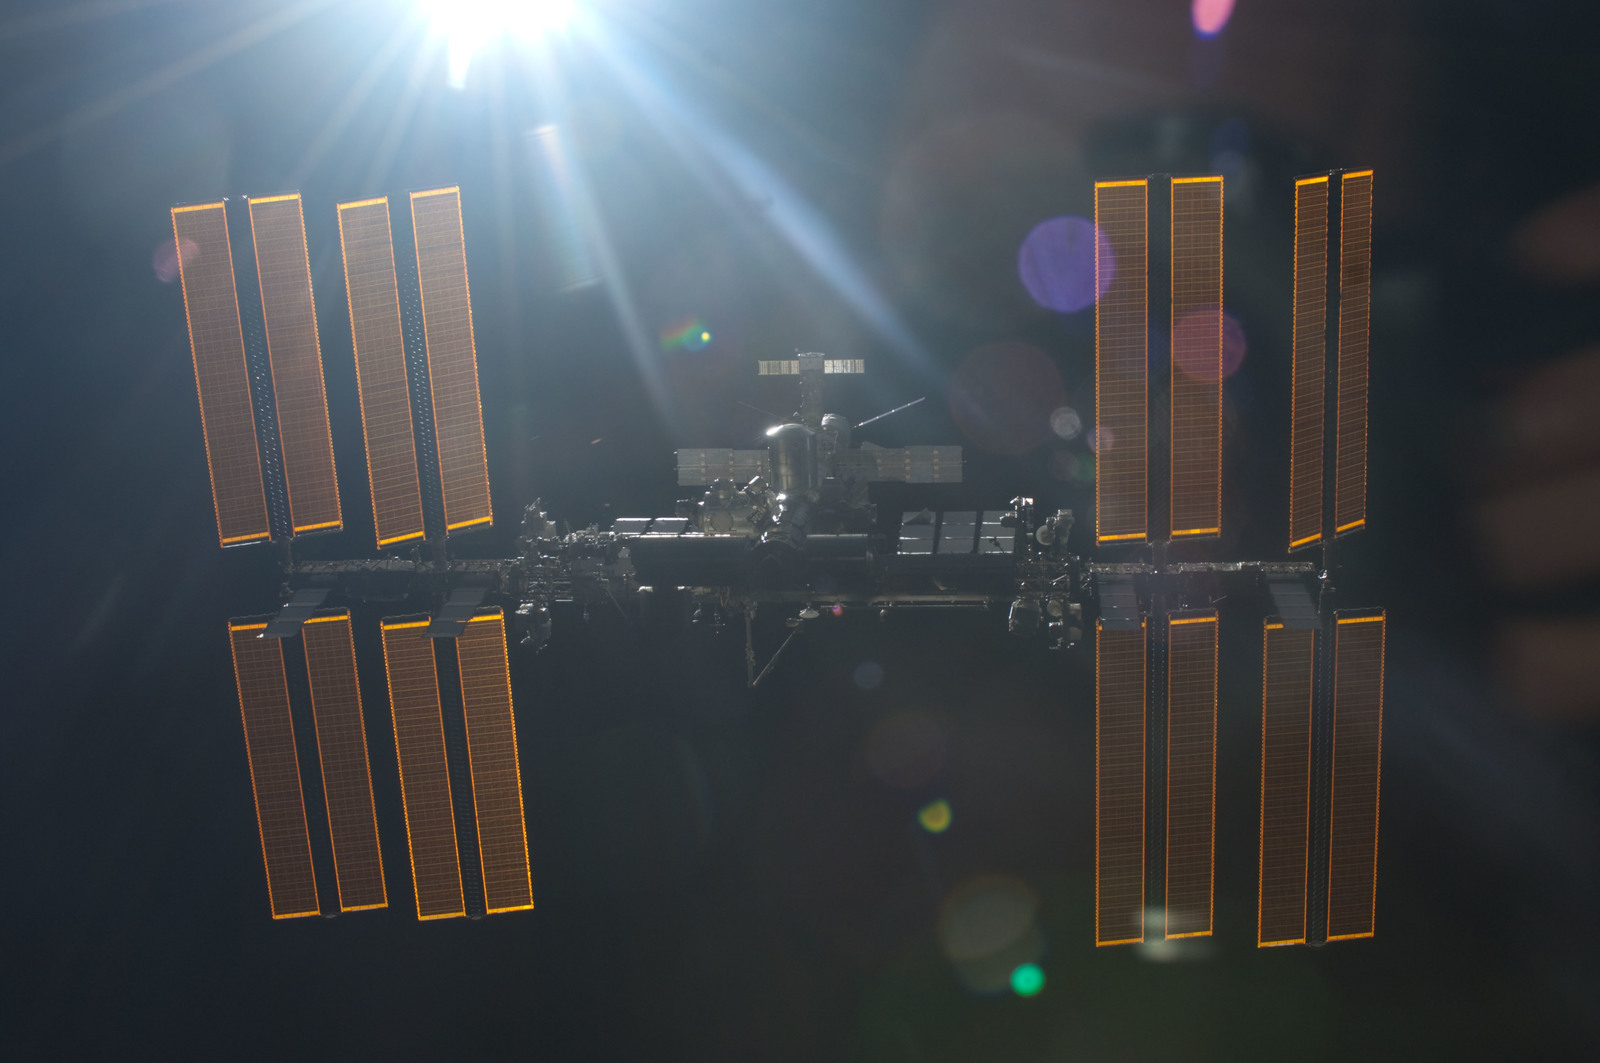 S134E011406 - STS-134 - Overall view of ISS